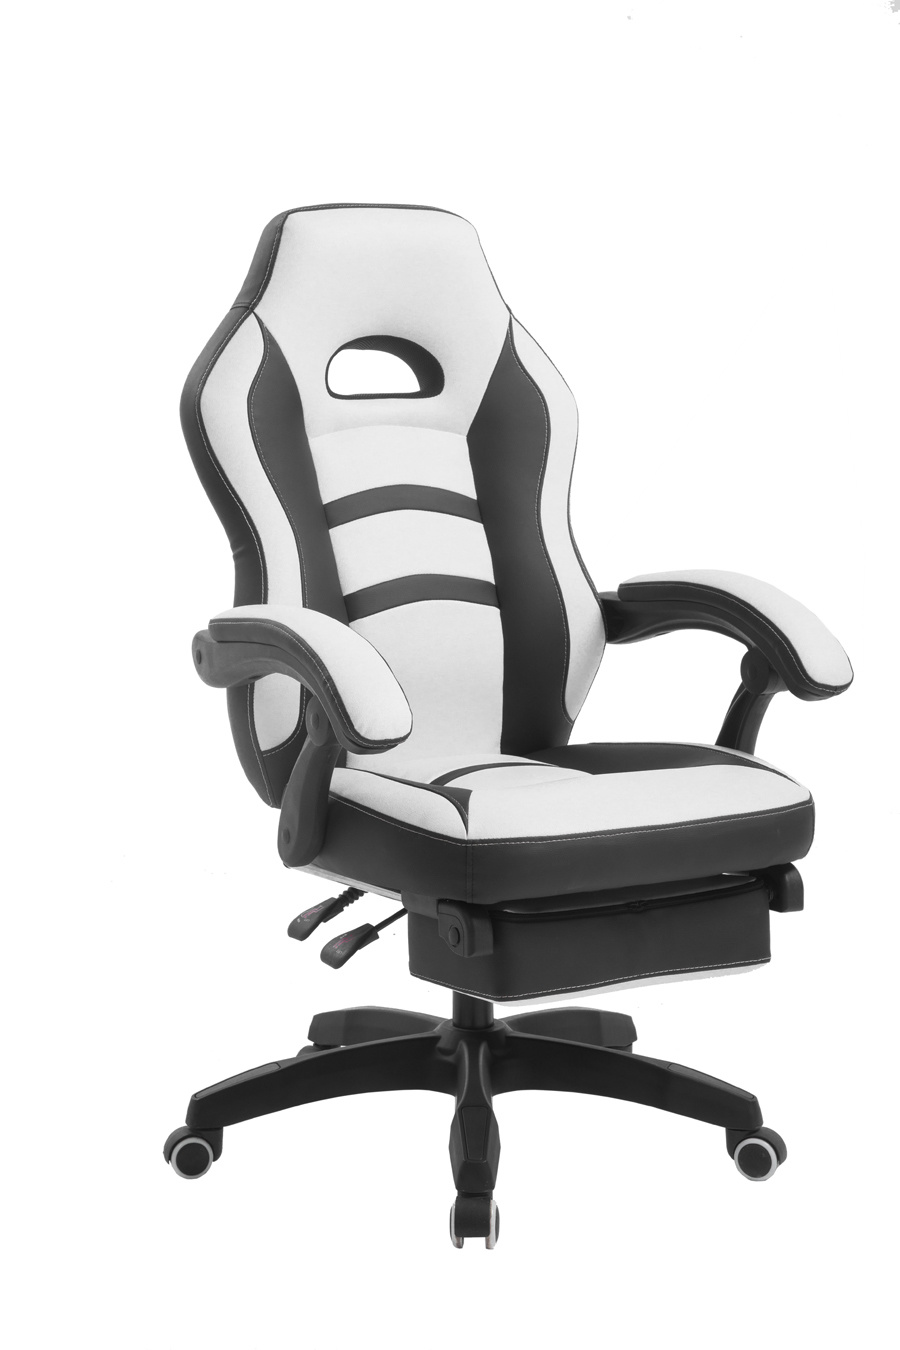 Hot Item Ergonomic Design Computer Gaming Racing Chair With Footrest White